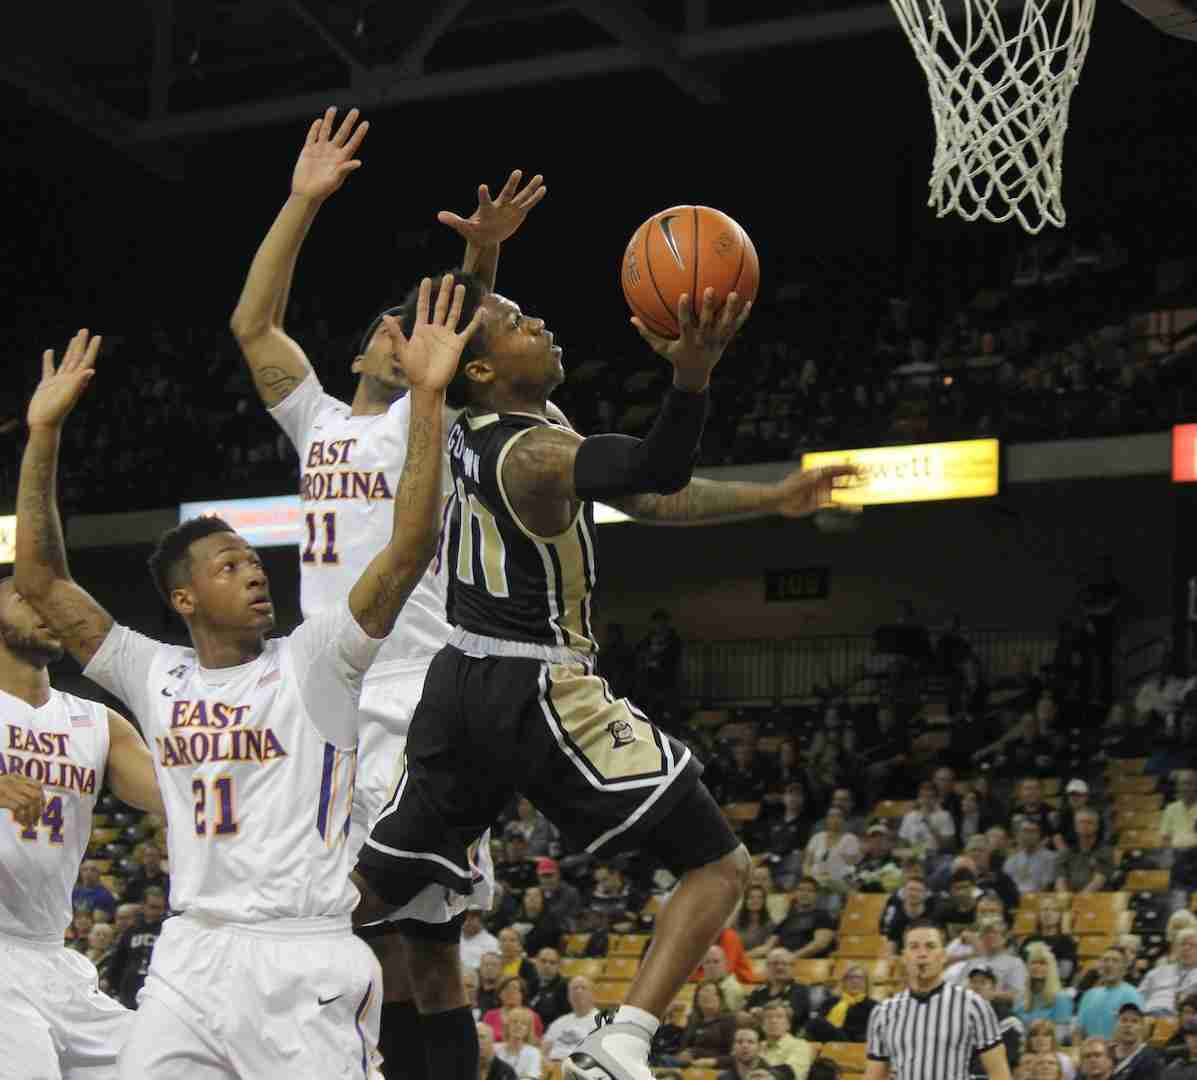 Brandon Goodwin scored nine points and had eight assists in the loss against ECU.